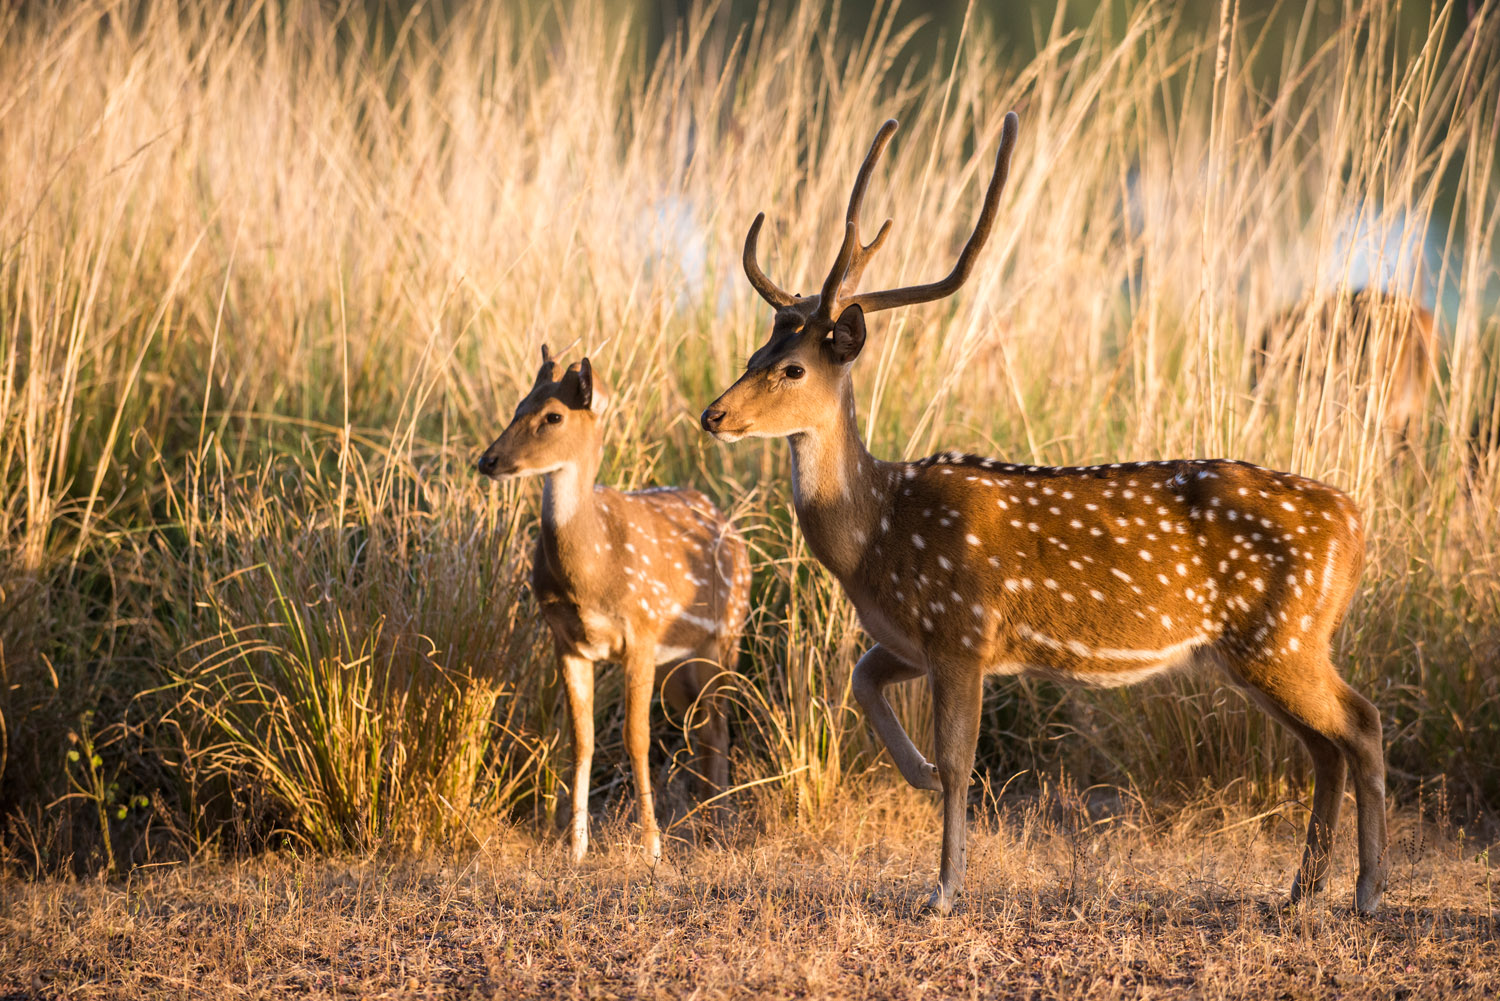 Chital/spotted deer buck with young, Ranthambhore National Park, Rajasthan, India